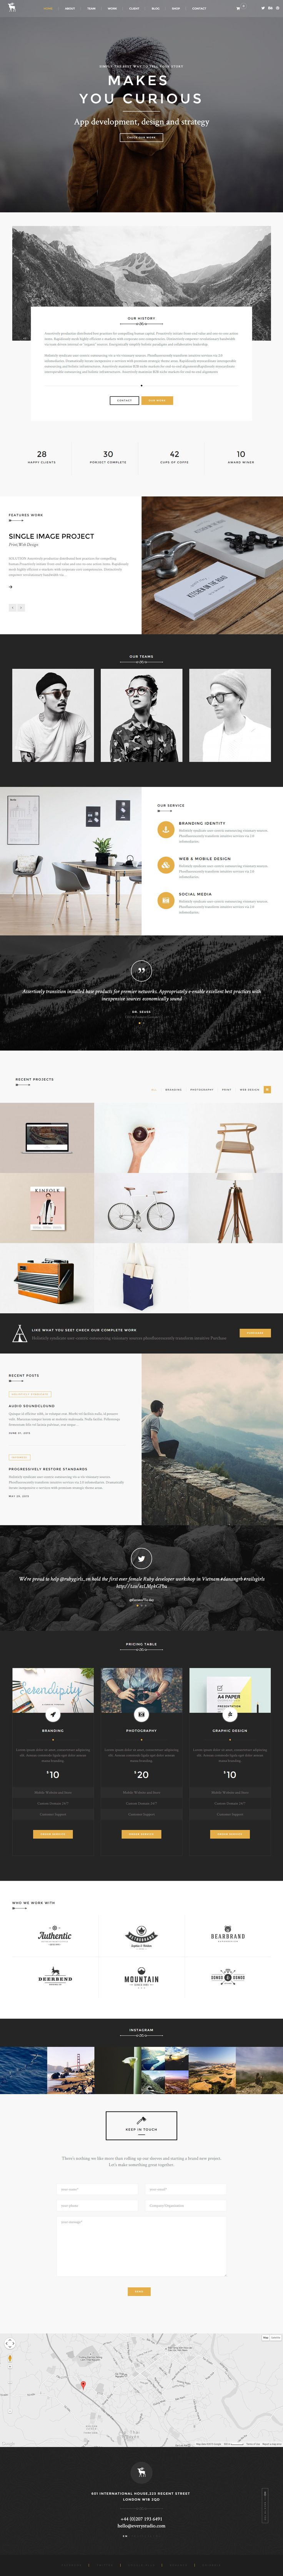 Every is Premium full Responsive Retina #Parallax #WordPress #Portfolio Theme. WooCommerce. Visual Composer. Video Background. Test free demo at: http://www.responsivemiracle.com/cms/every-premium-responsive-one-page-portfolio-wordpress-theme/